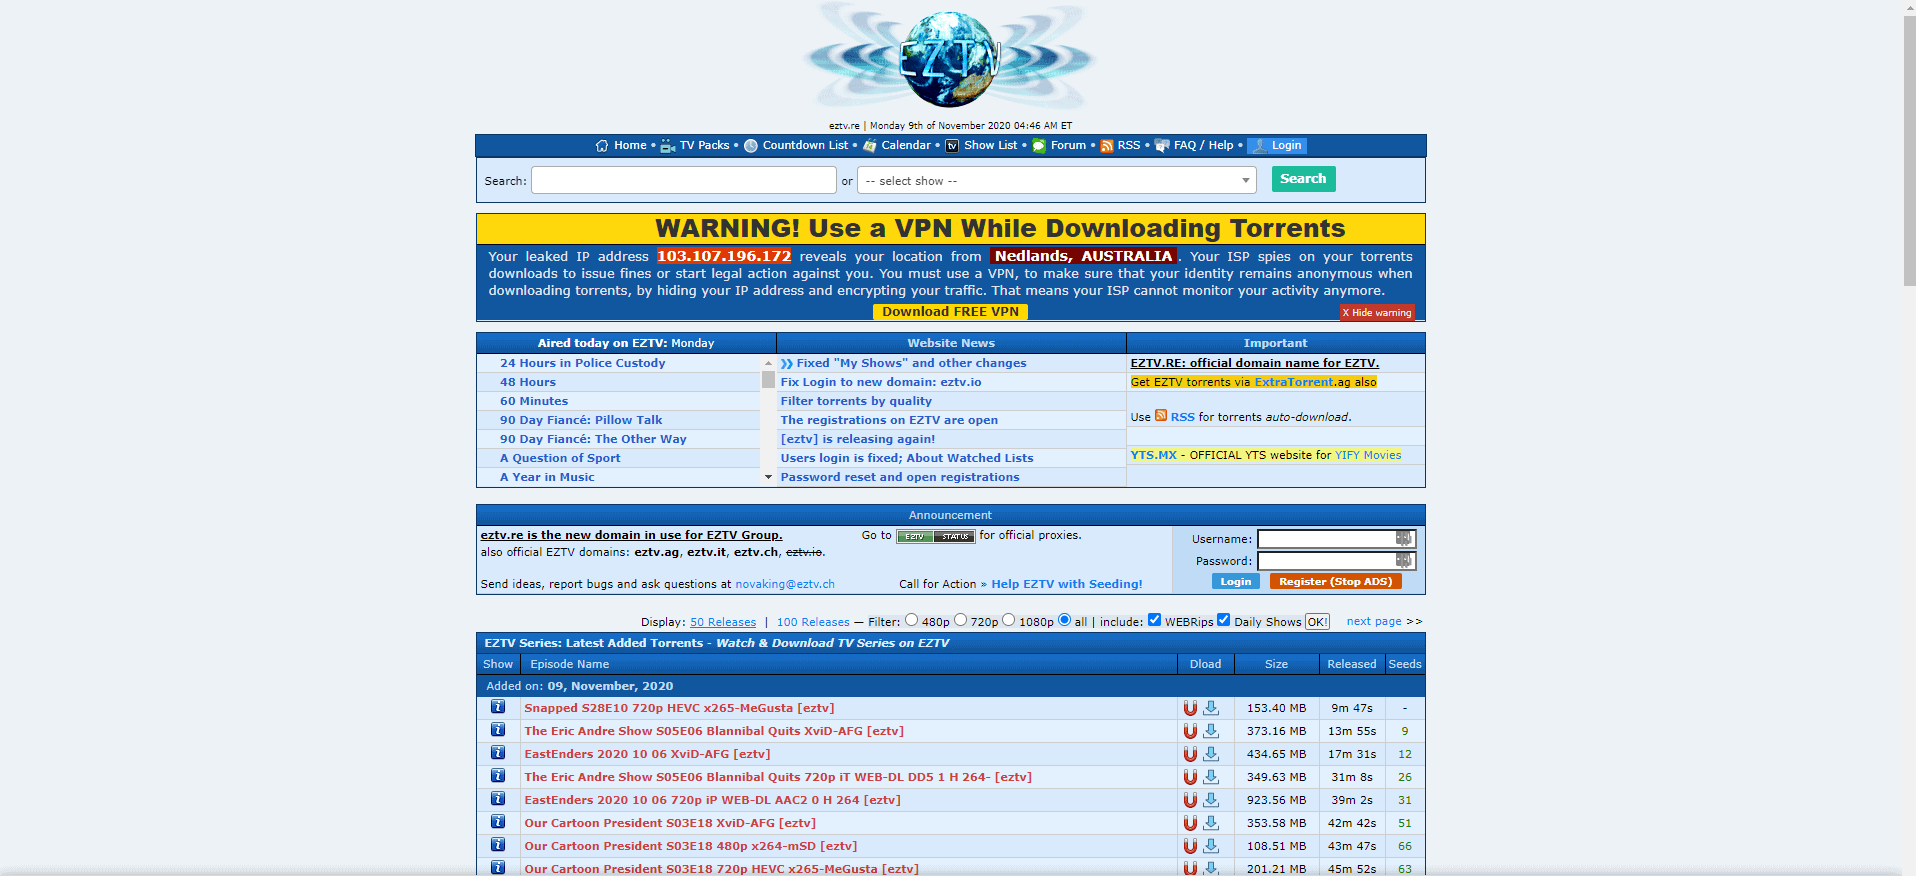 An image featuring the homepage of the EZTV website